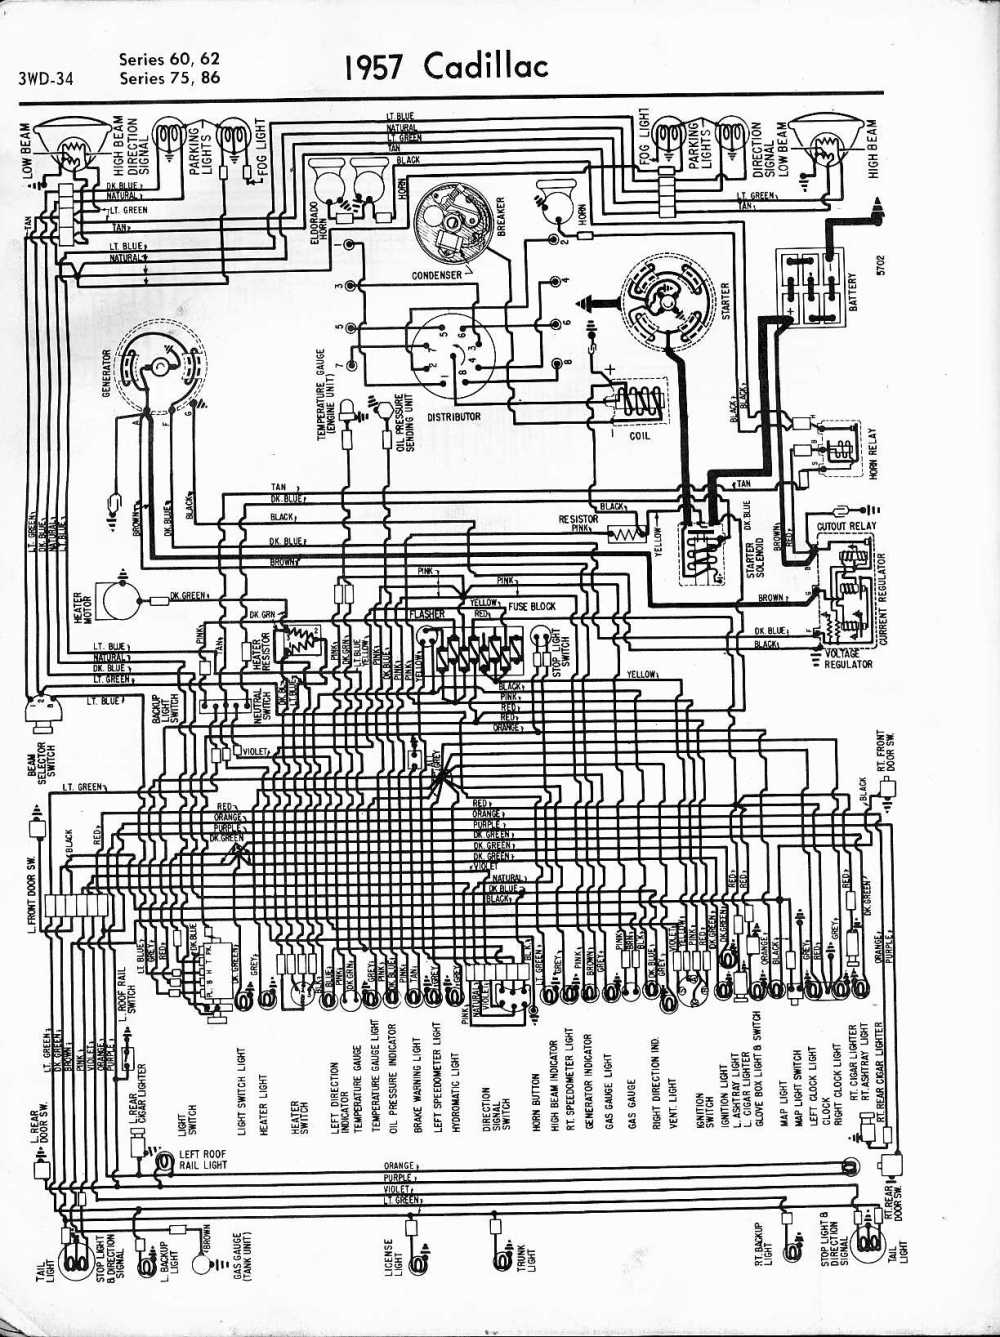 medium resolution of cadillac wiring diagrams 1957 1965 1956 opel wiring diagram 1956 cadillac wiring diagram